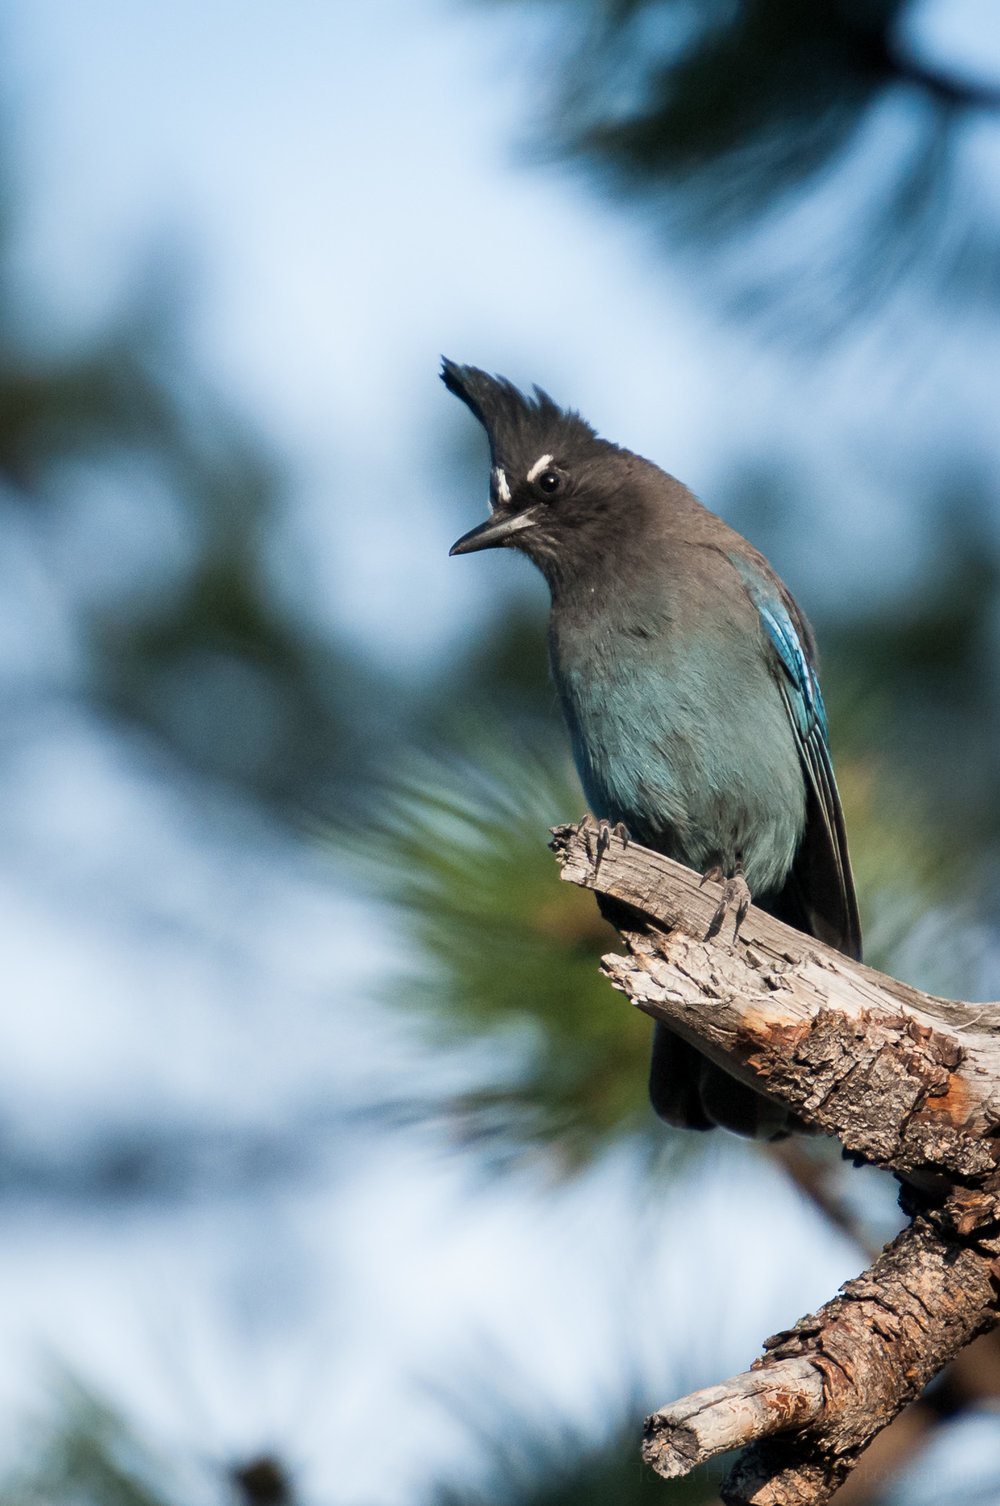 Steller's Jay, with white eye brows, perched on a branch